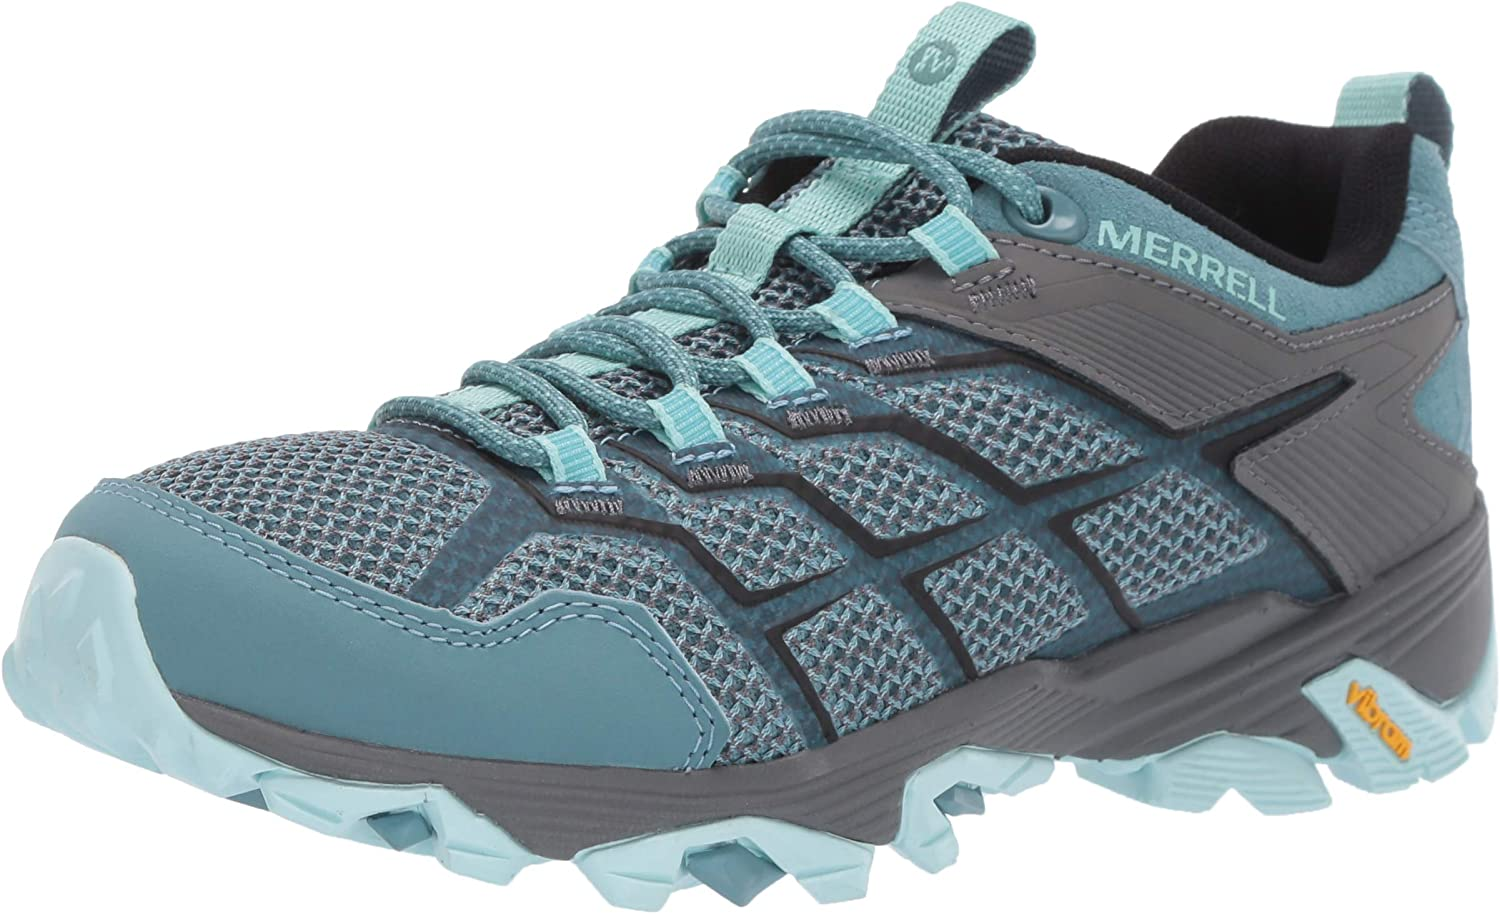 Merrell Men's Moab FST 2 Hiking Shoe